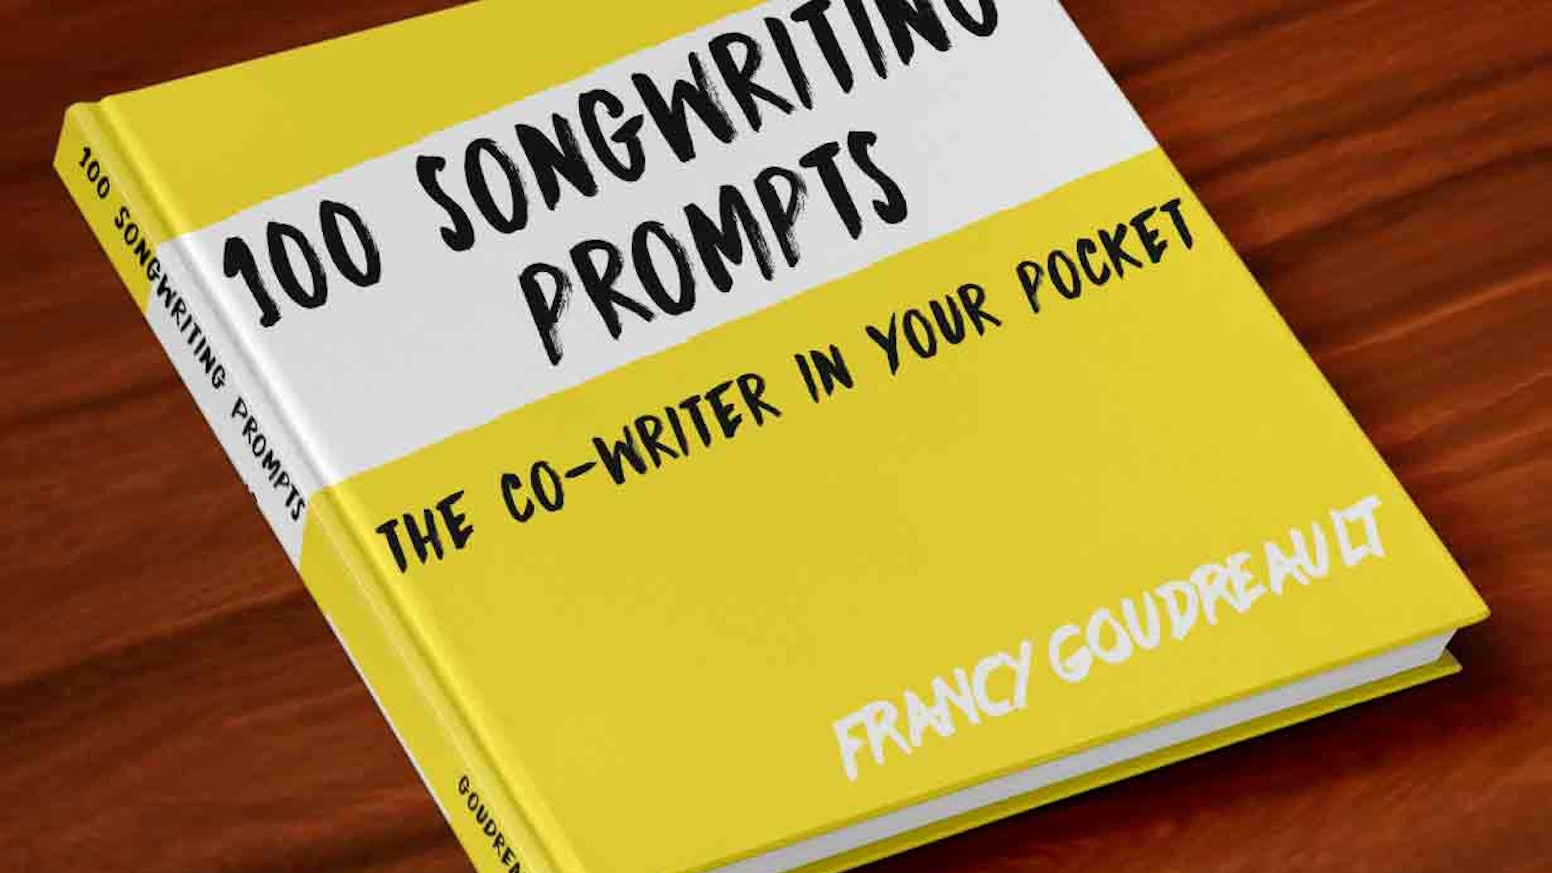 """""""100 Songwriting Prompts"""" is a pocket book packed with inspiring song ideas designed to get blocked writers writing.With the first edition printing fully funded in November 2017, the book is now available for purchase at the link below."""